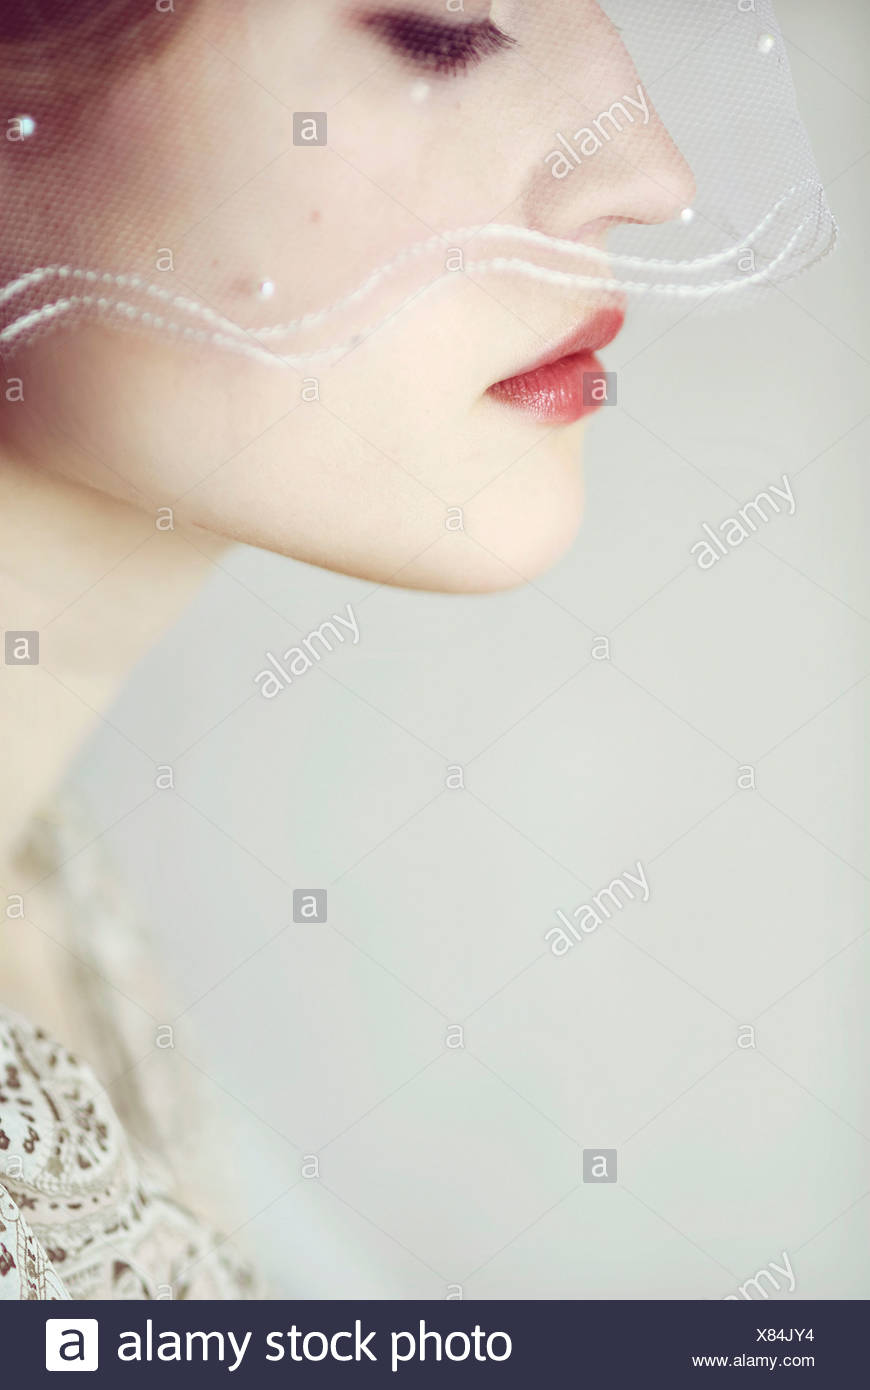 Close portrait of young woman looking down to the side with a bridal veil covering parts of her face - Stock Image